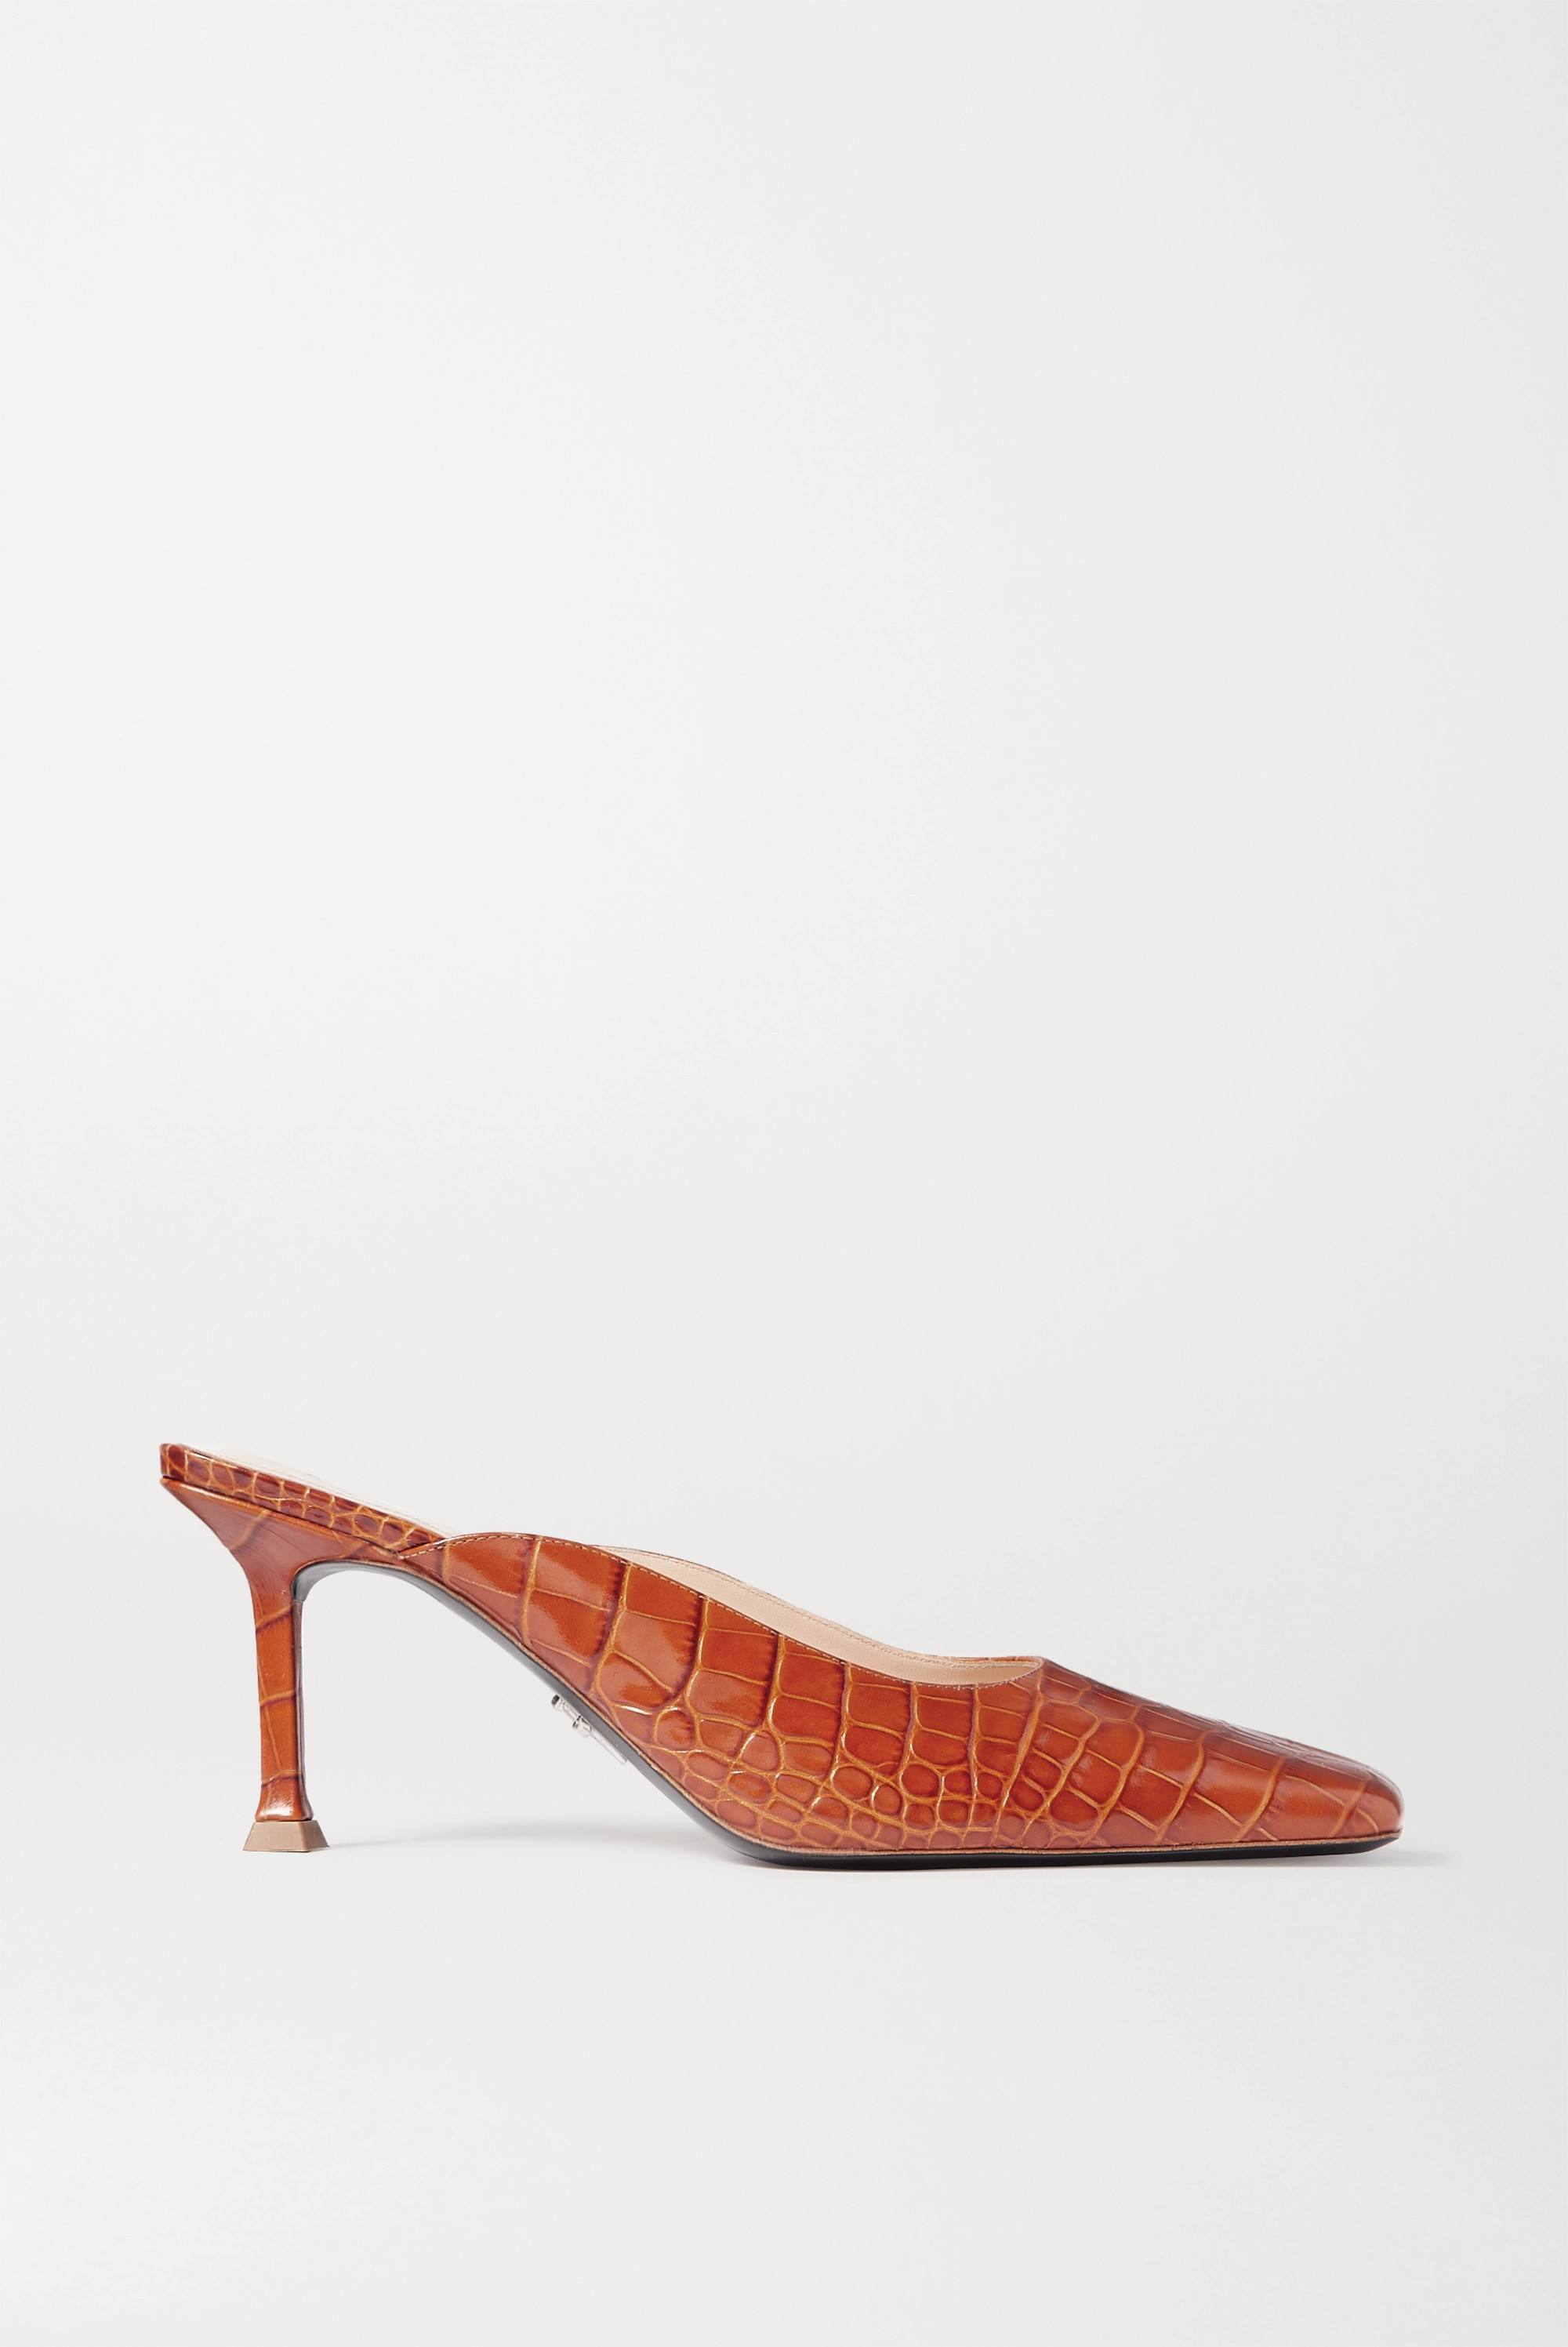 Paciotti Croc-effect leather mules